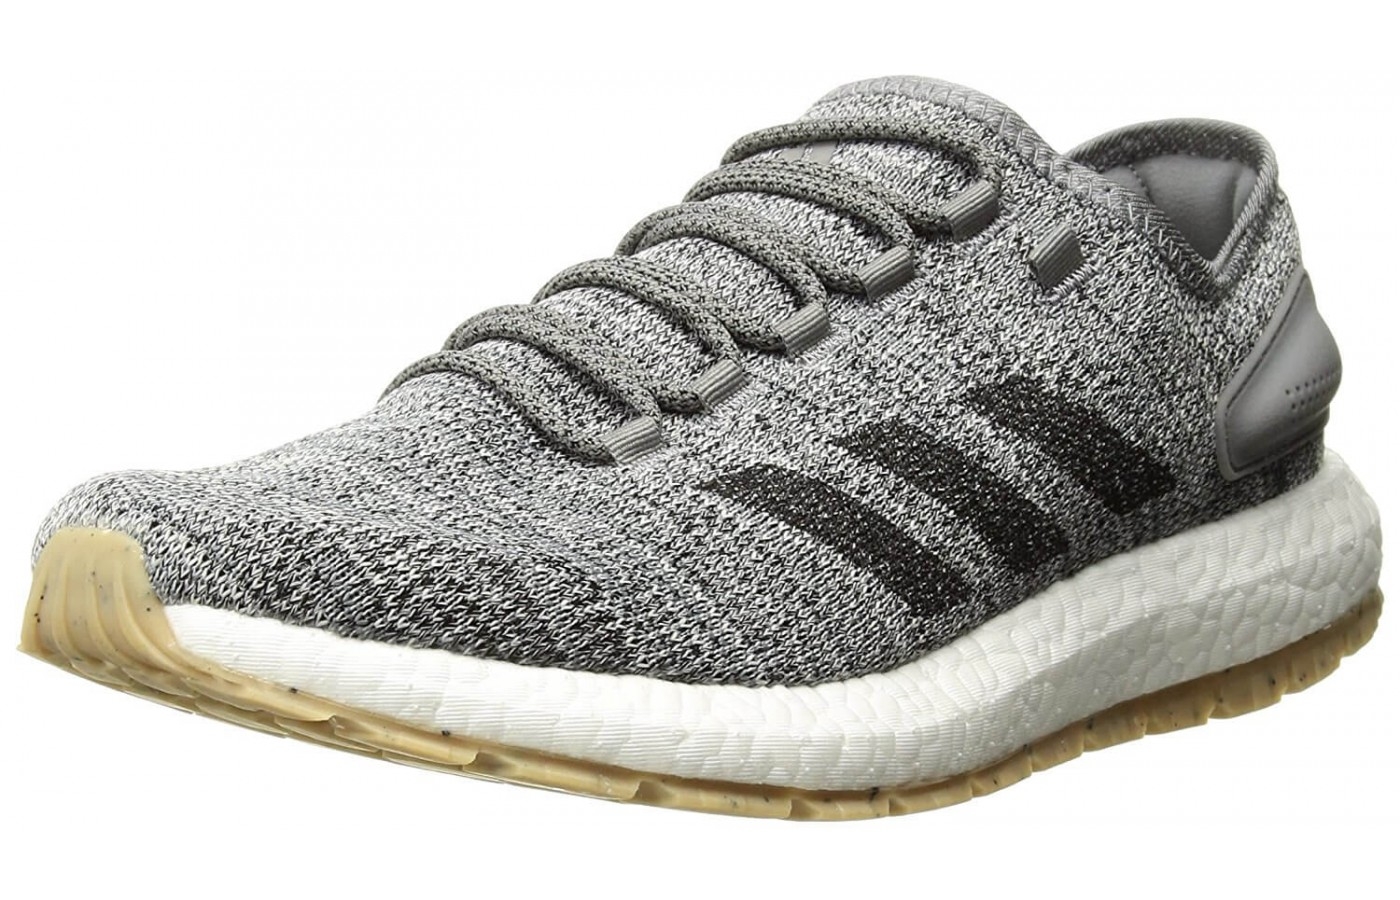 An angled view of the Adidas Pureboost All-Terrain.